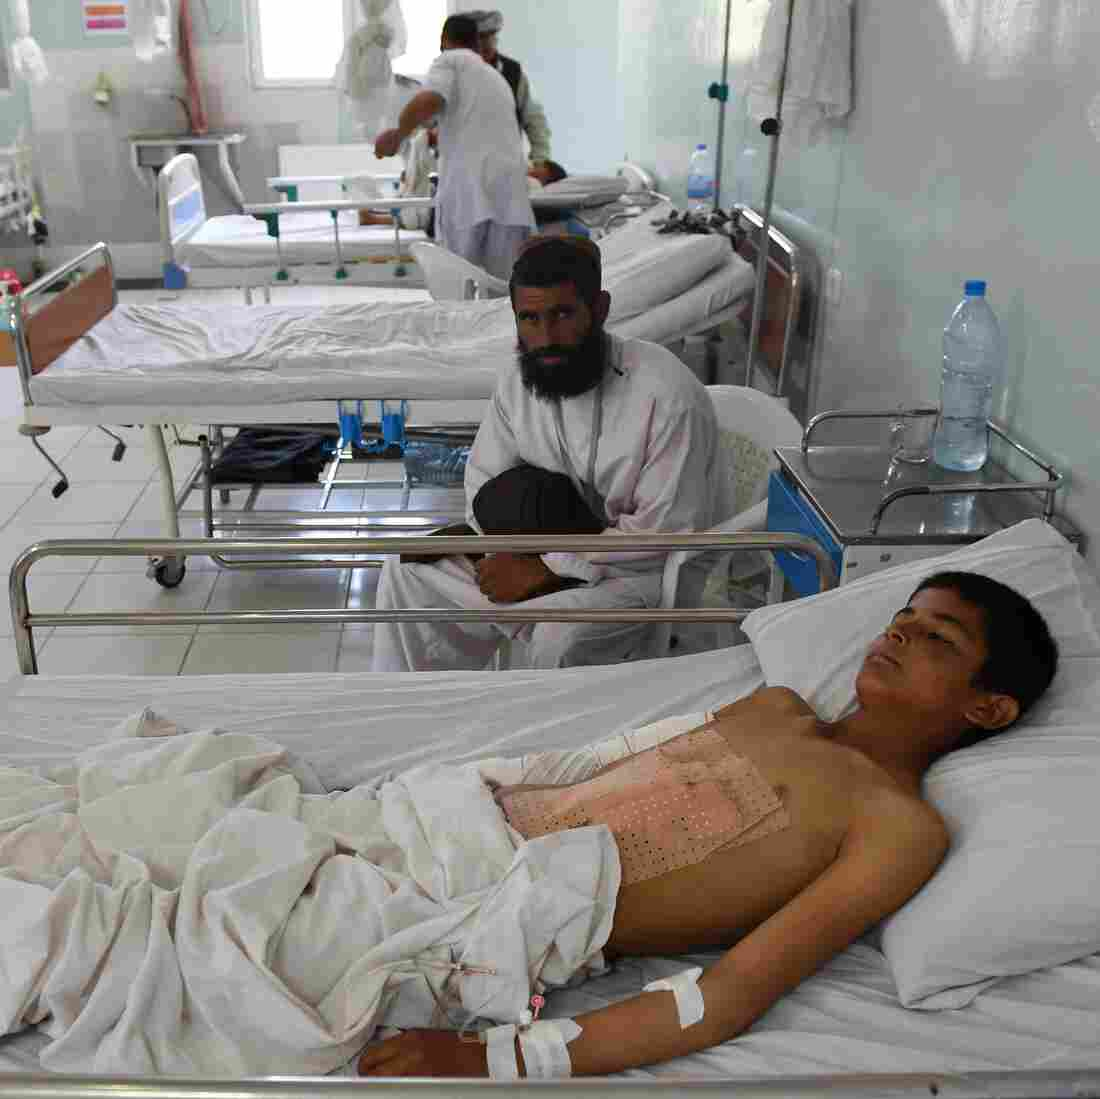 Kunduz Airstrike Reportedly Kills 19 At Doctors Without Borders Hospital